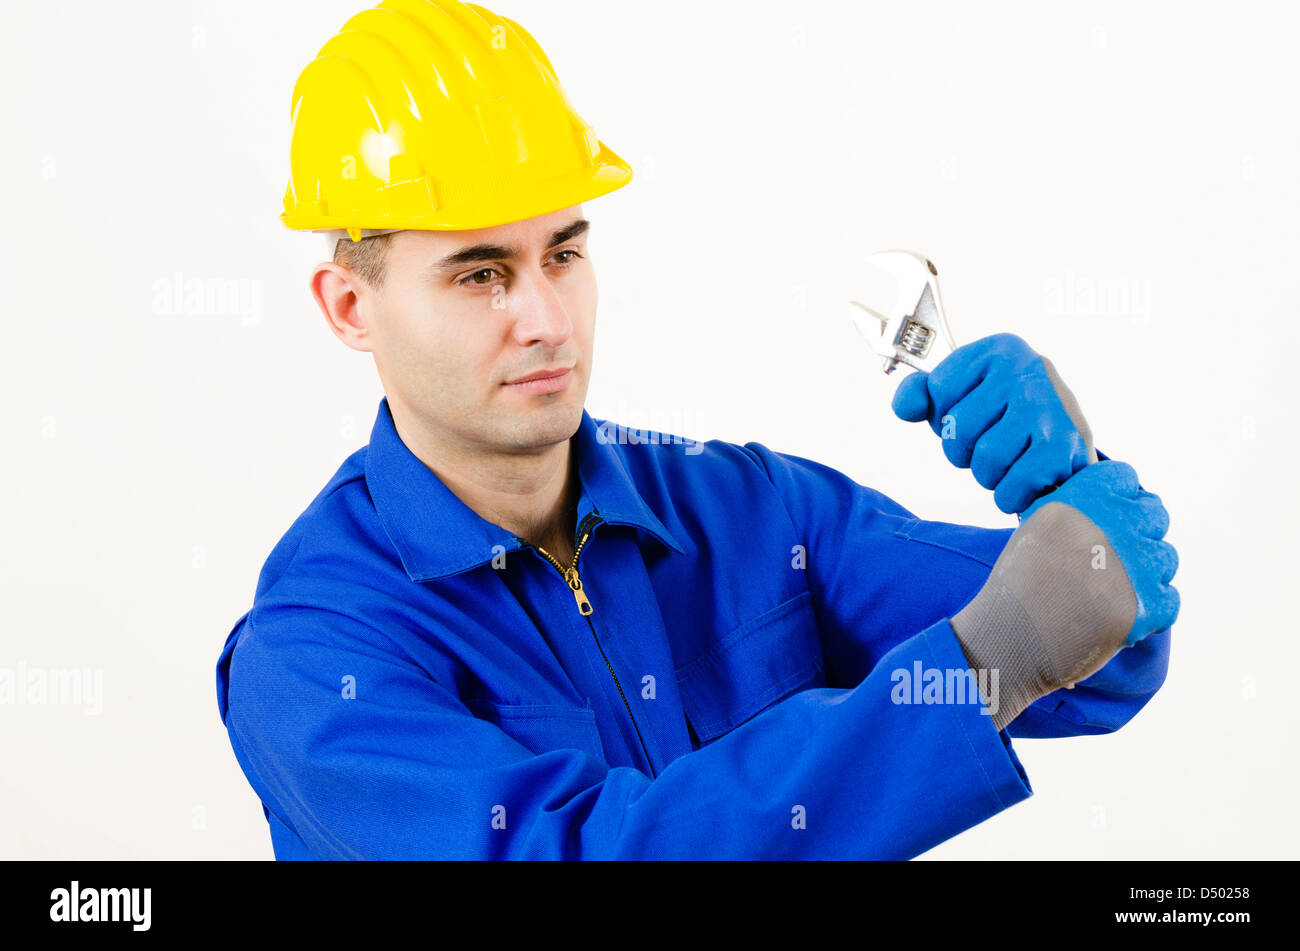 A man wearing protective equipment holding adjustable wrench Stock Photo